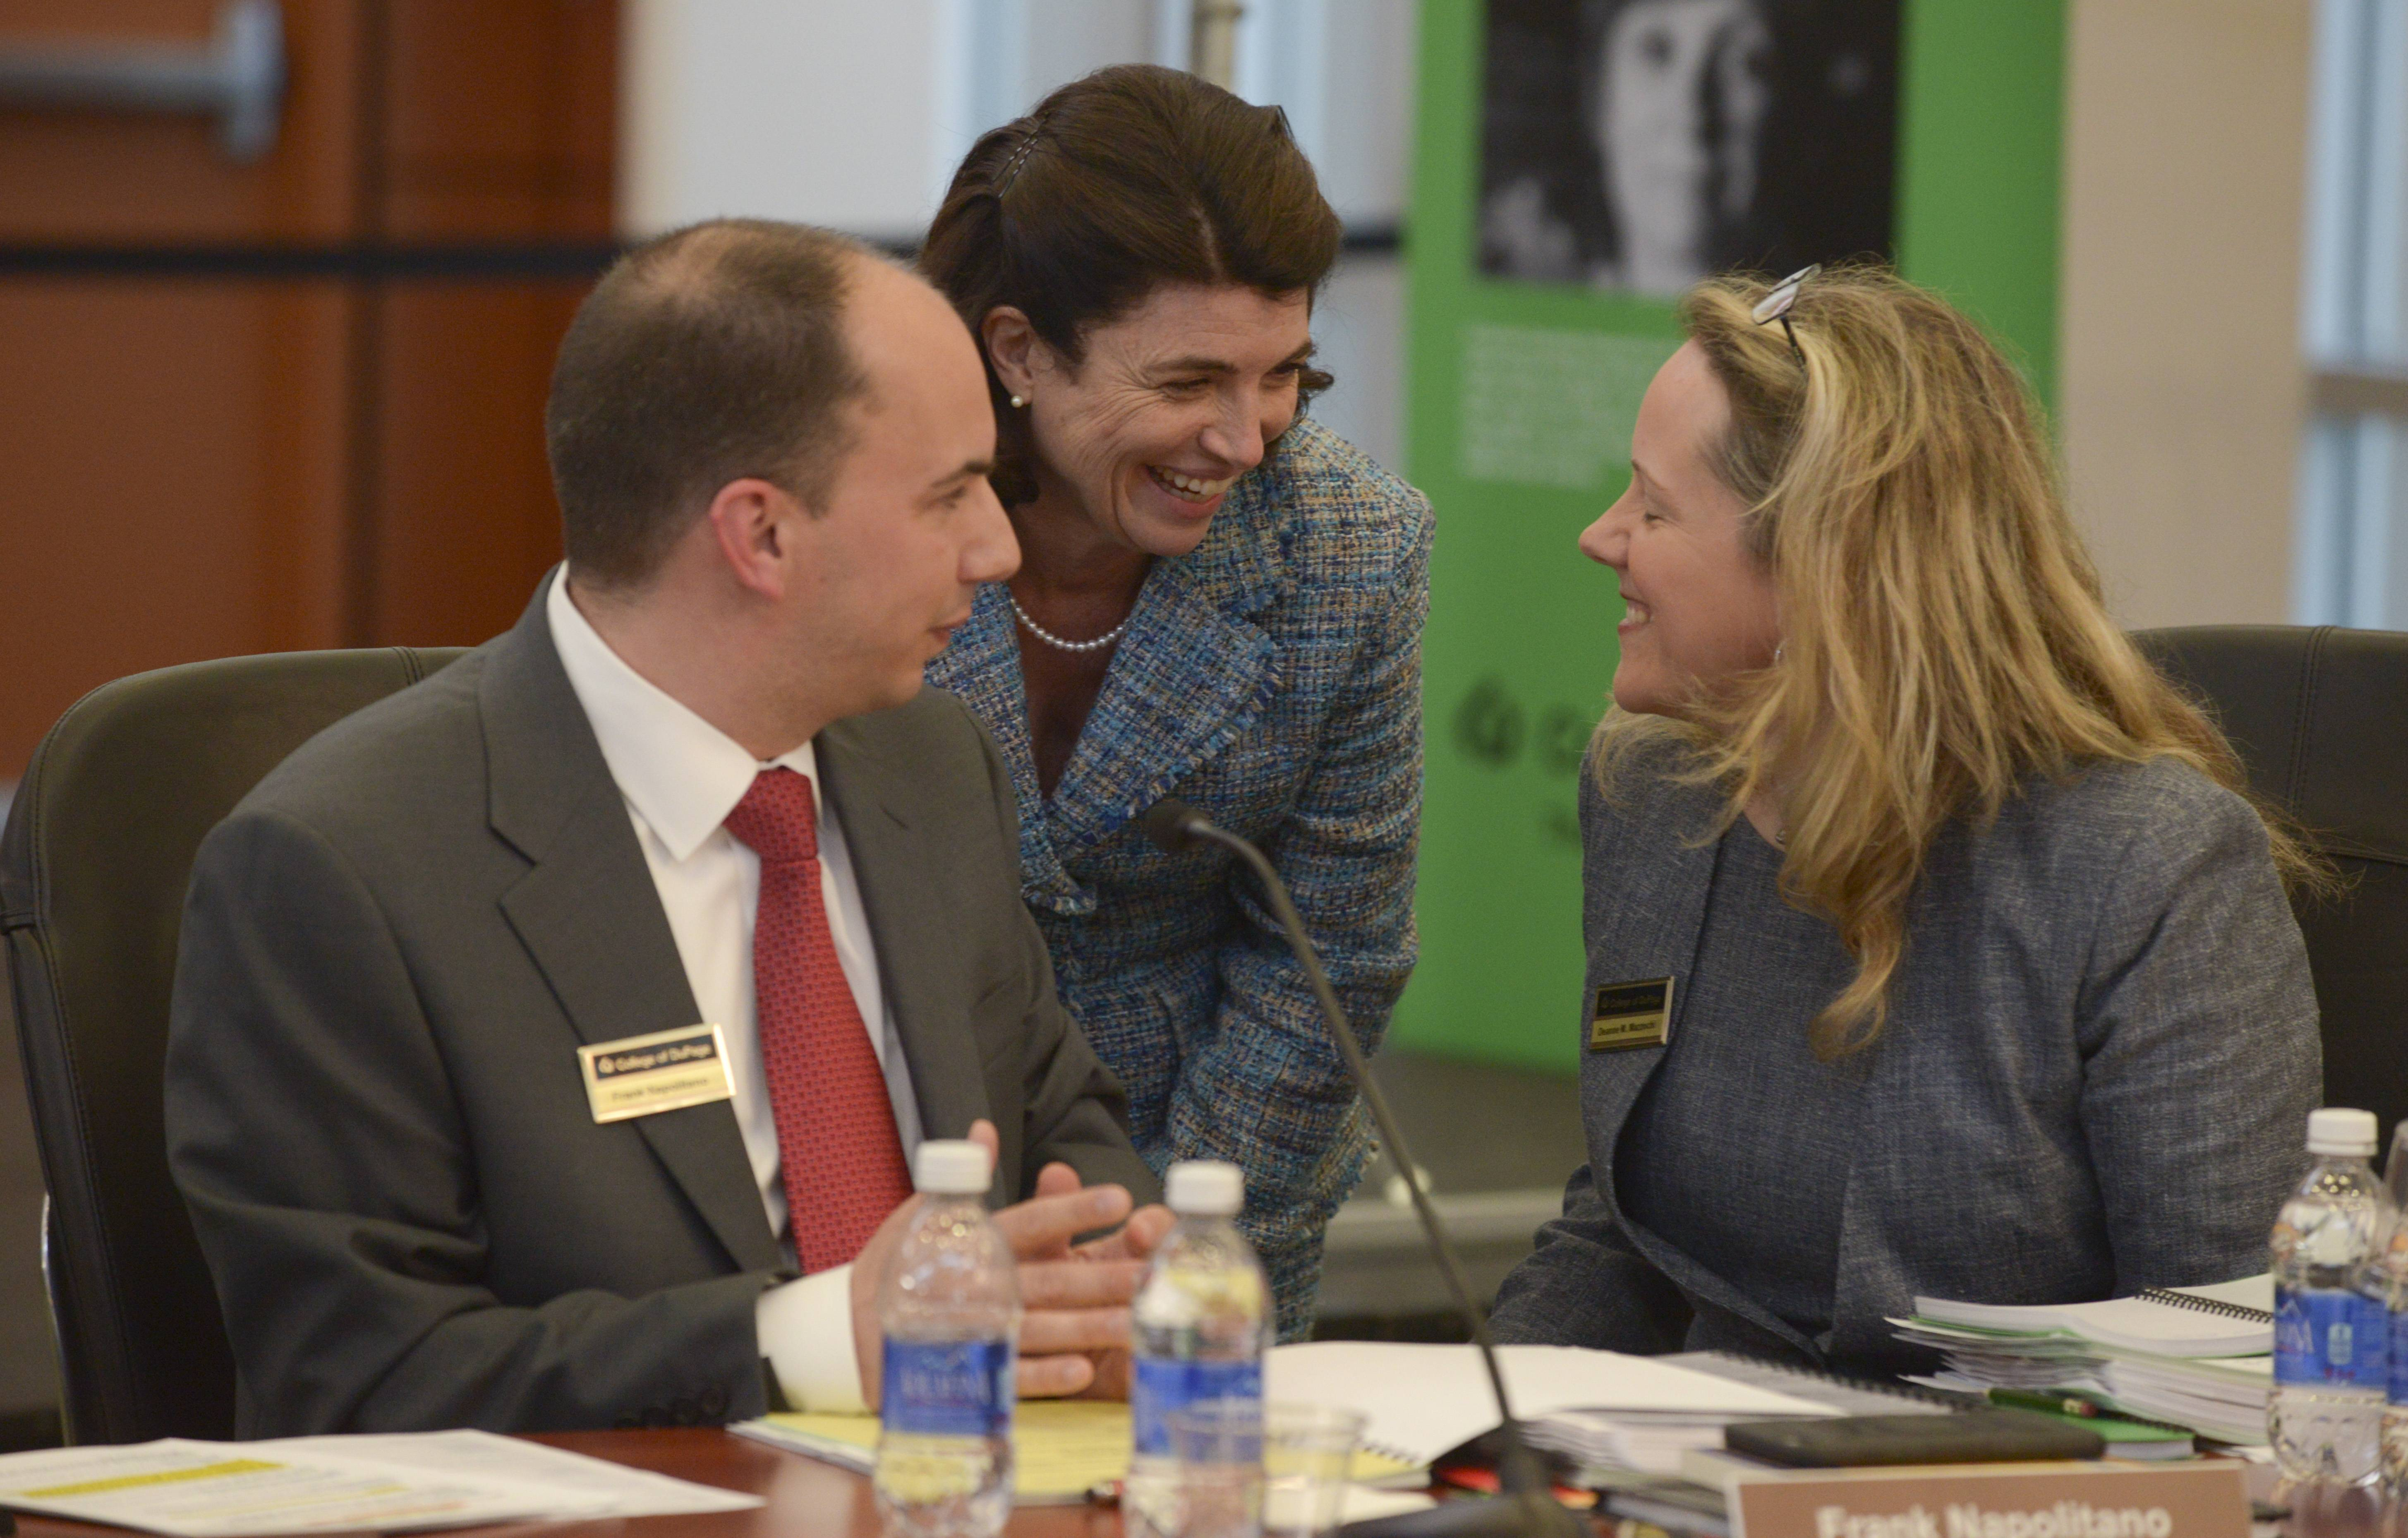 Kathy Hamilton, center, speaks with Frank Napolitano and Deanne Mazzochi during Napolitano's and Mazzochi's first College of DuPage board meeting after being elected to the panel in April 2015.